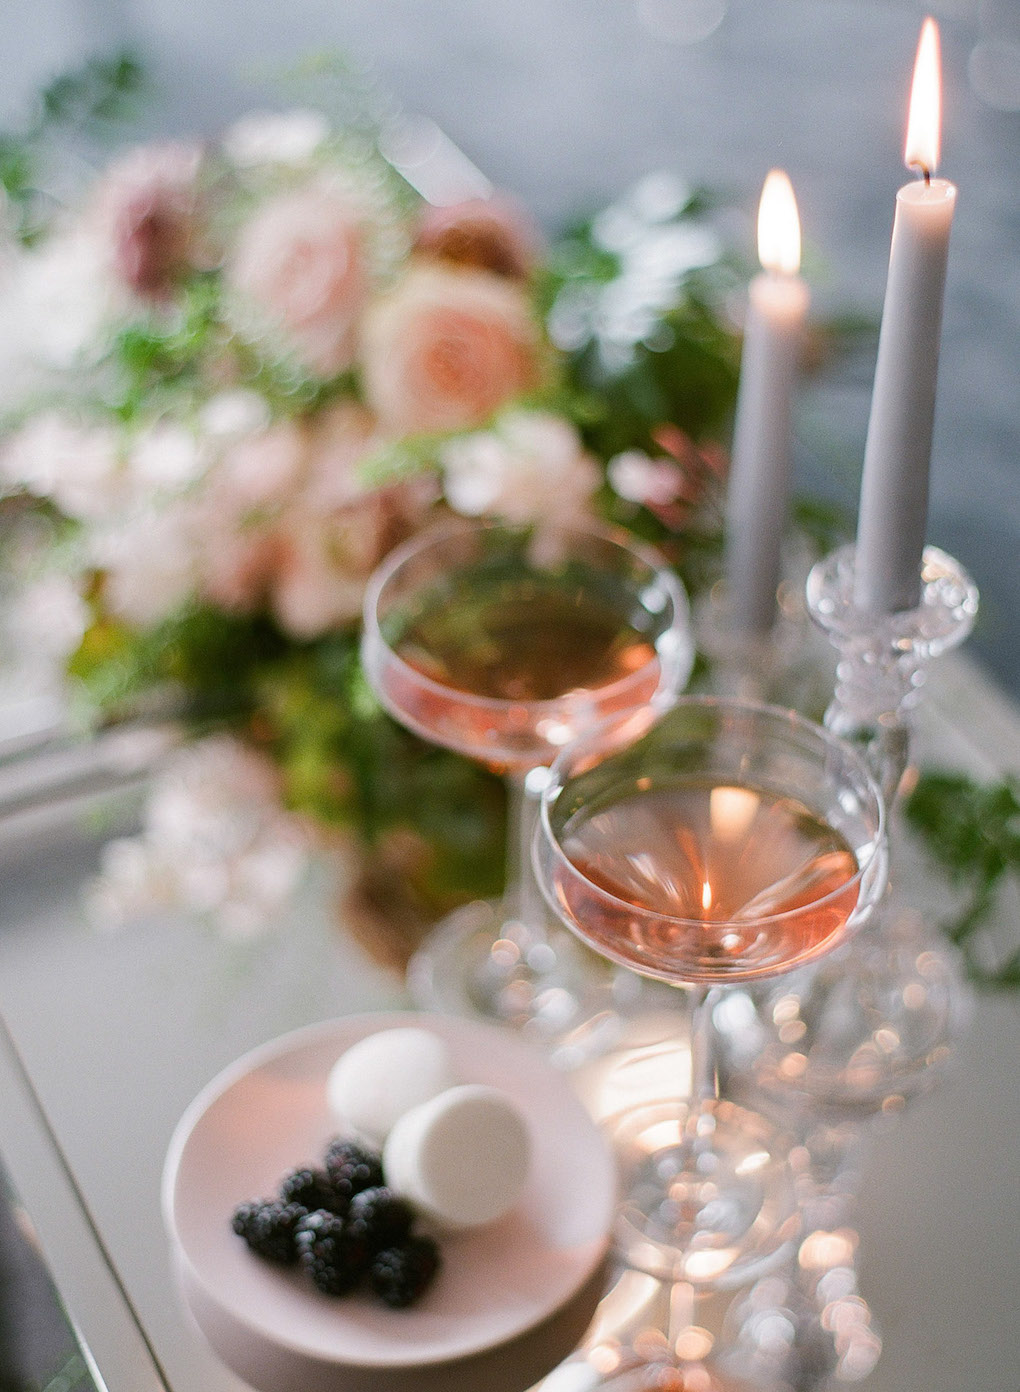 Wedding toast ideas: Soft and Subtle Palettes of Spring Blossoms | Editorial Shoot at The Renaissance Pittsburgh by Exhale Events. See more inspiration at exhale-events.com!